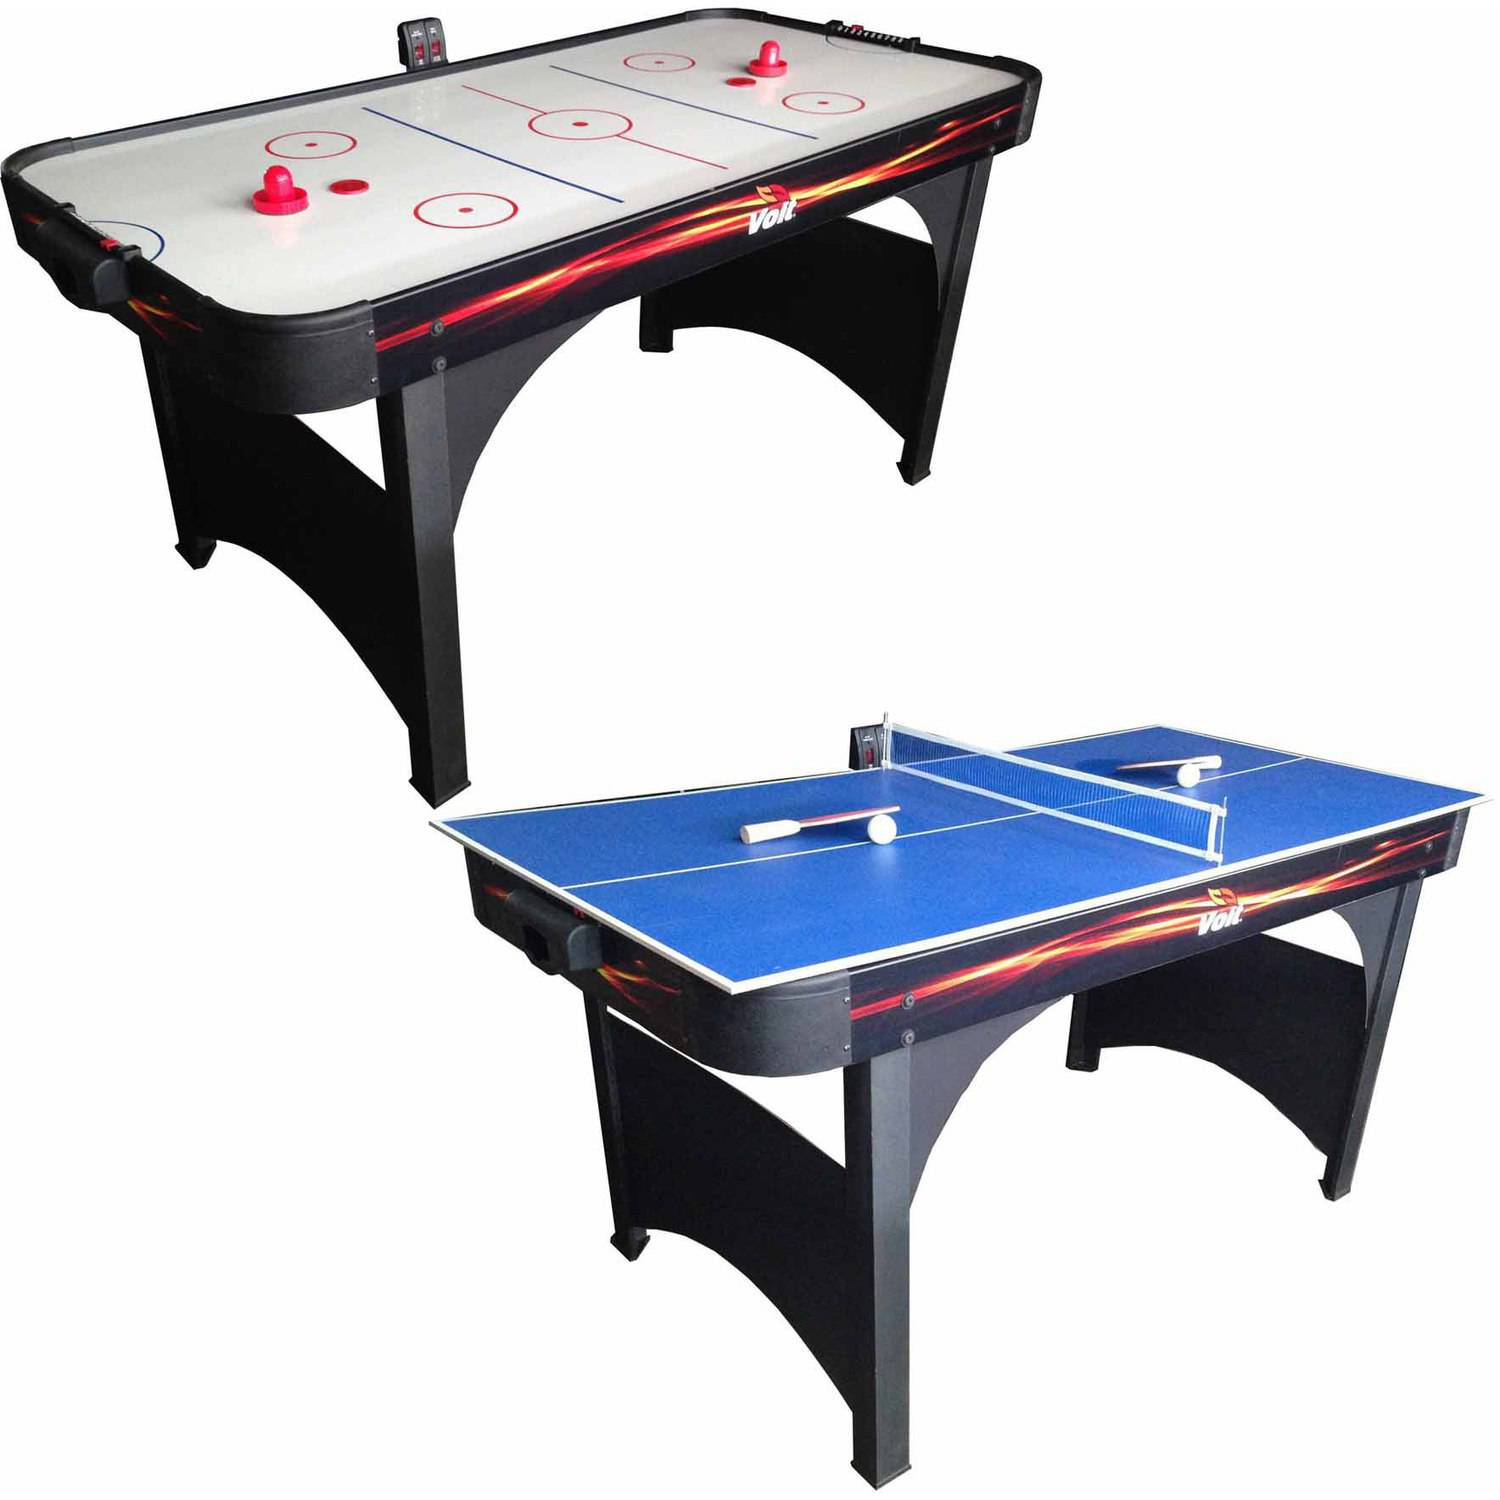 "Voit Playmaker 60"" Air Hockey Table with Ping Pong by Generic"